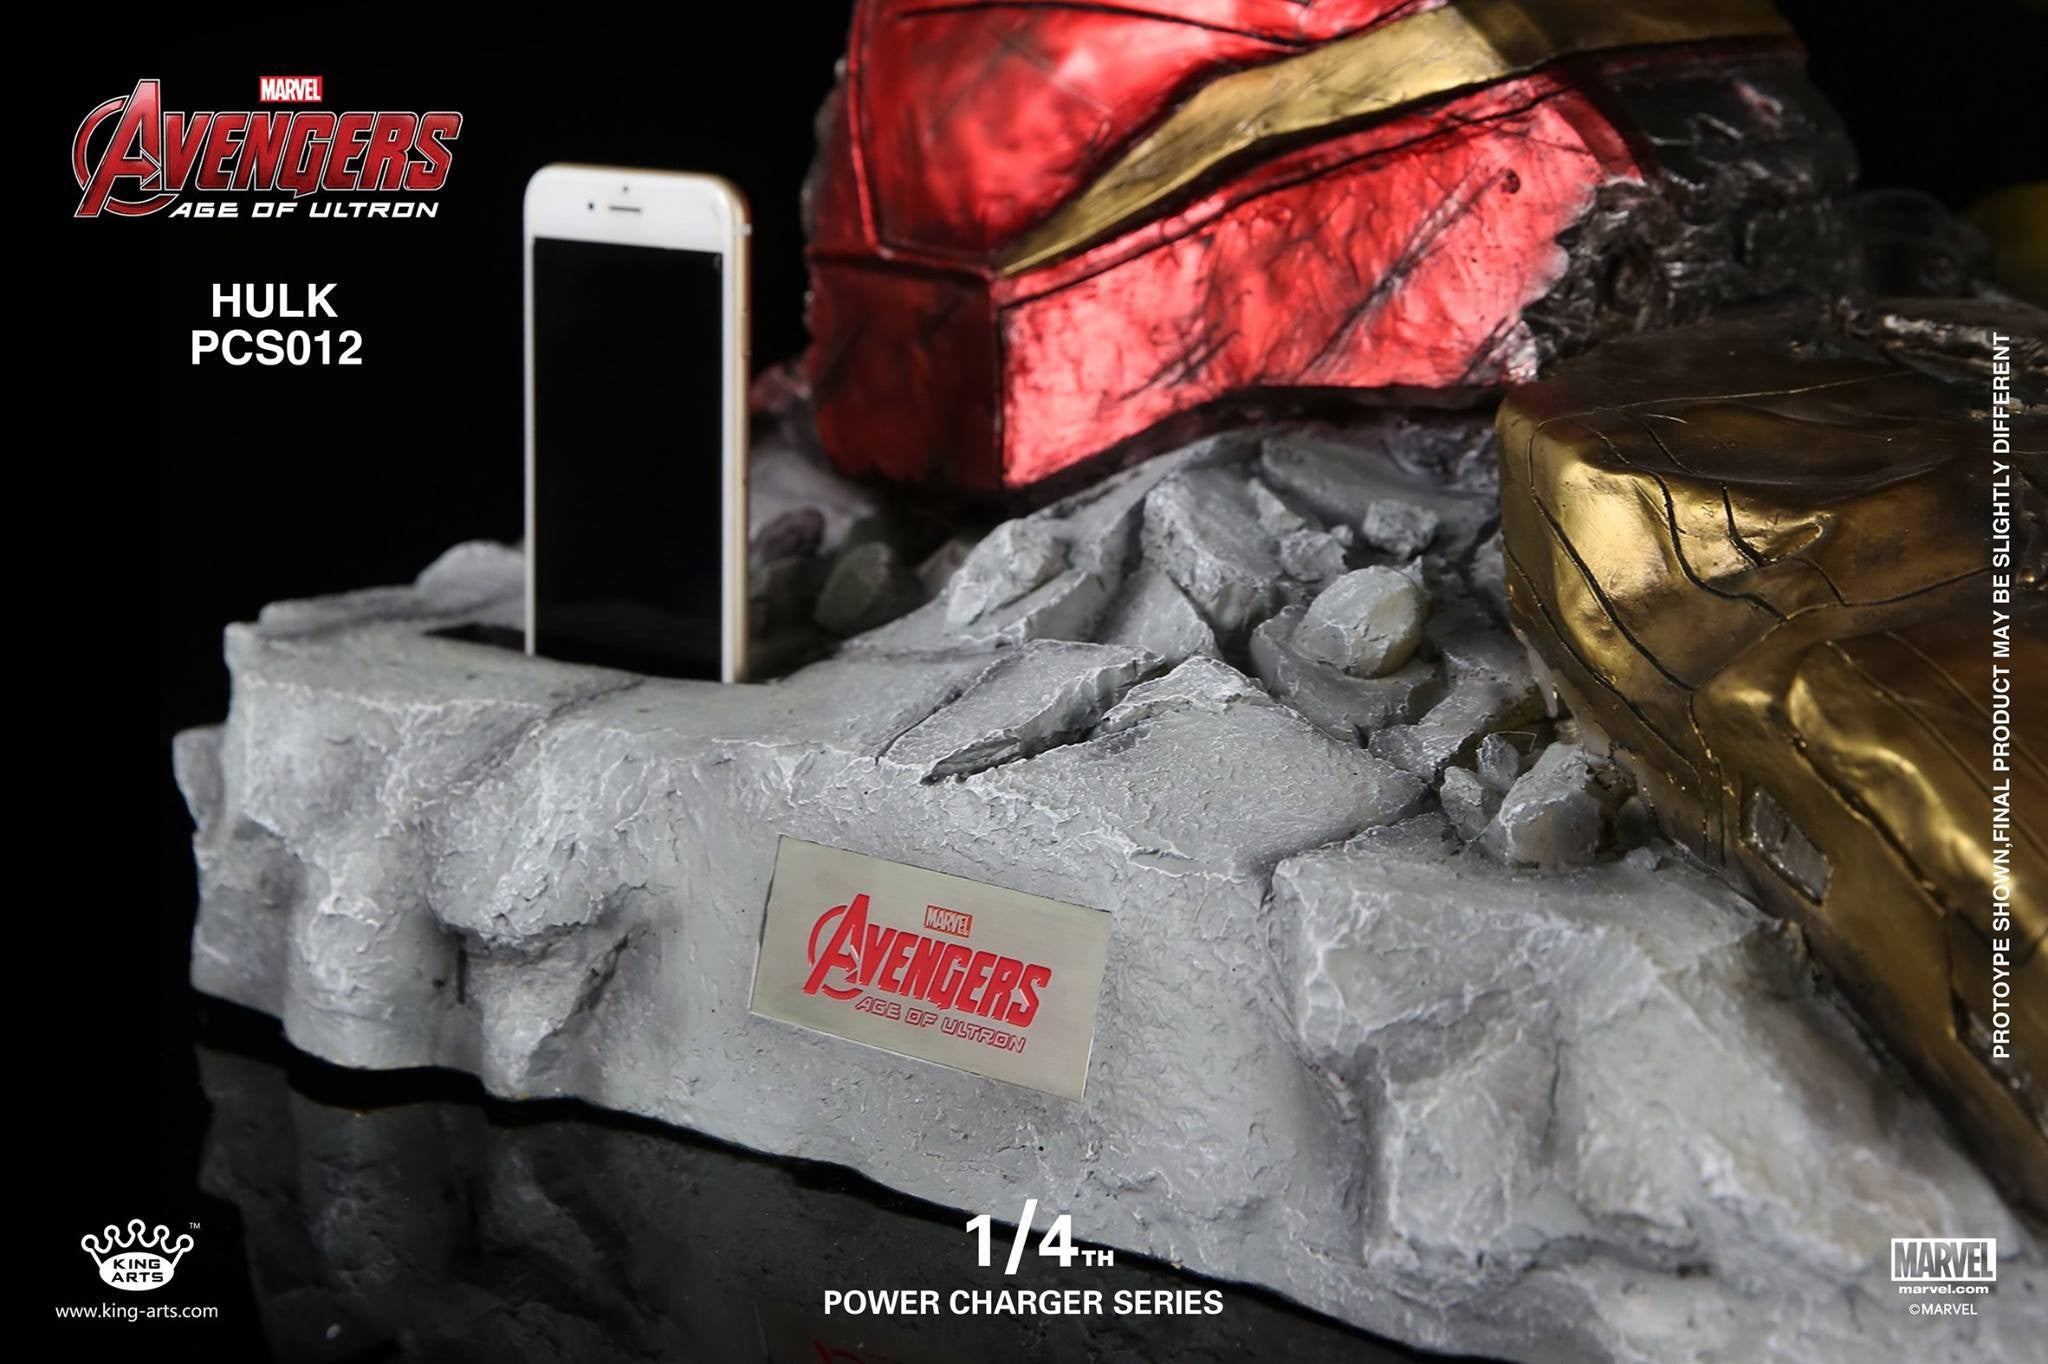 King Arts - Power Charger Series PCS012 - Avengers: Age of Ultron - 1/4th Scale Hulk Charger - Marvelous Toys - 8